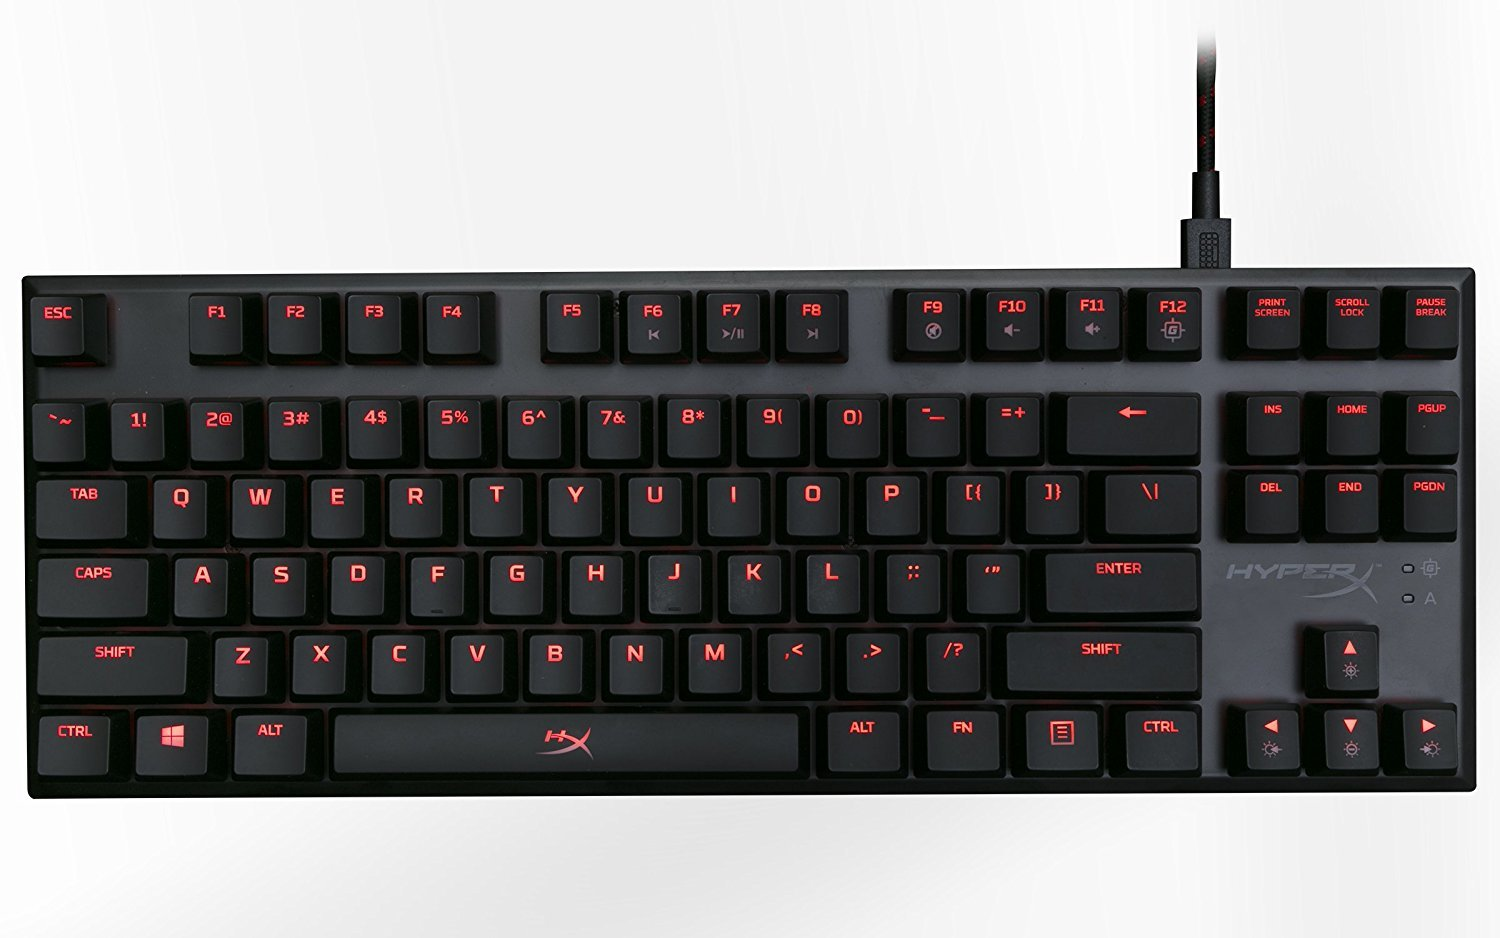 HyperX Alloy FPS Pro Mechanical Gaming Keyboard (Cherry MX Blue) - PC Games